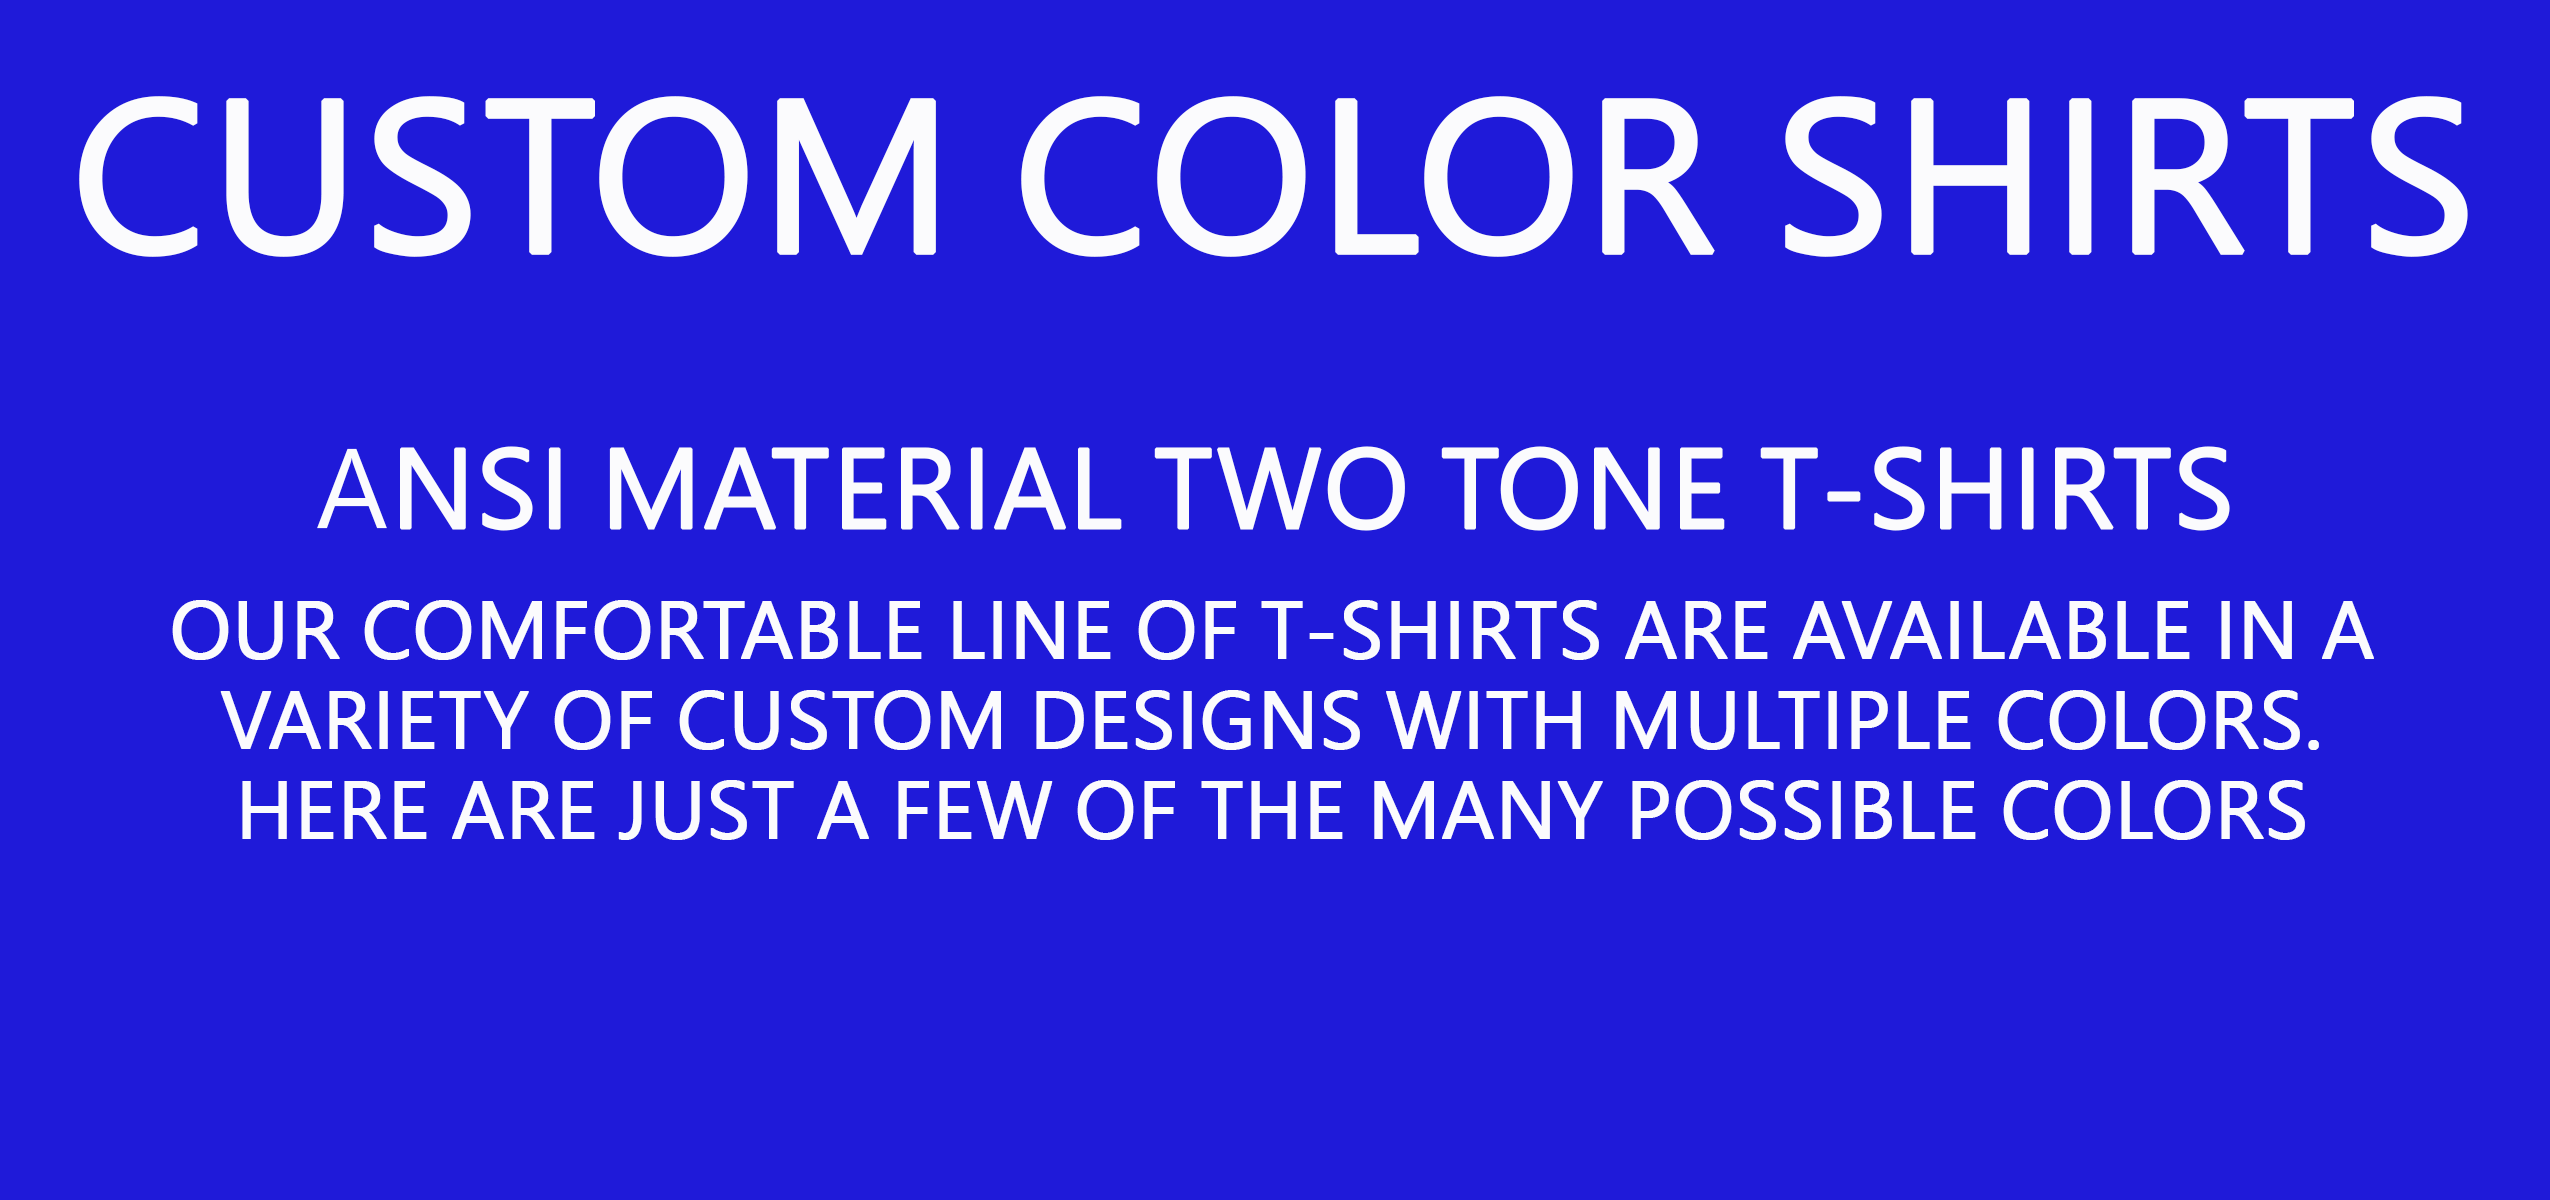 CUSTOM COLOR SHIRTS